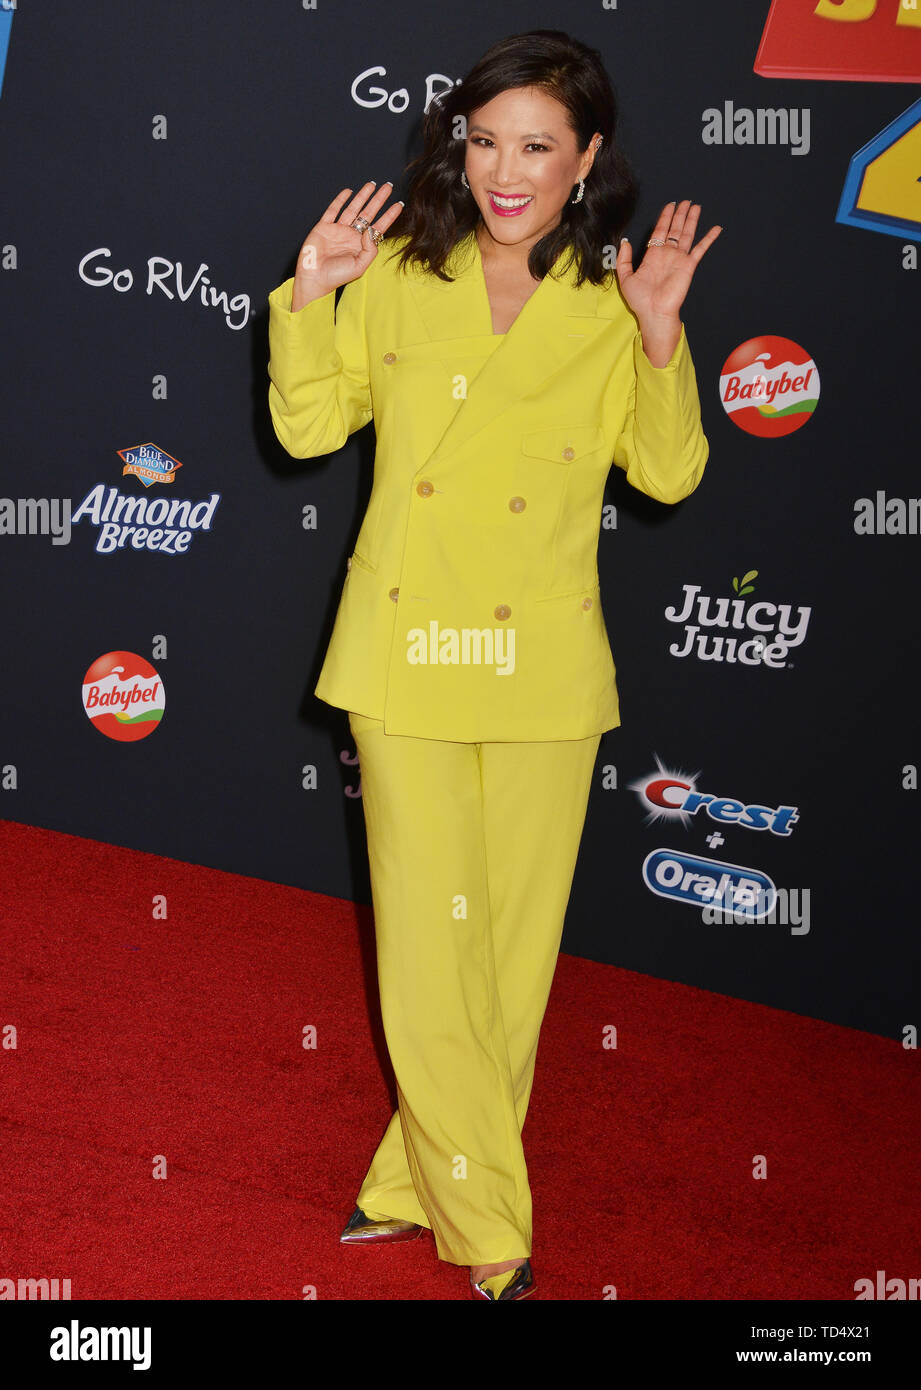 Ally Maki 008 arrives at the premiere of Disney and Pixar's 'Toy Story 4' on June 11, 2019 in Los Angeles, California. - Stock Image